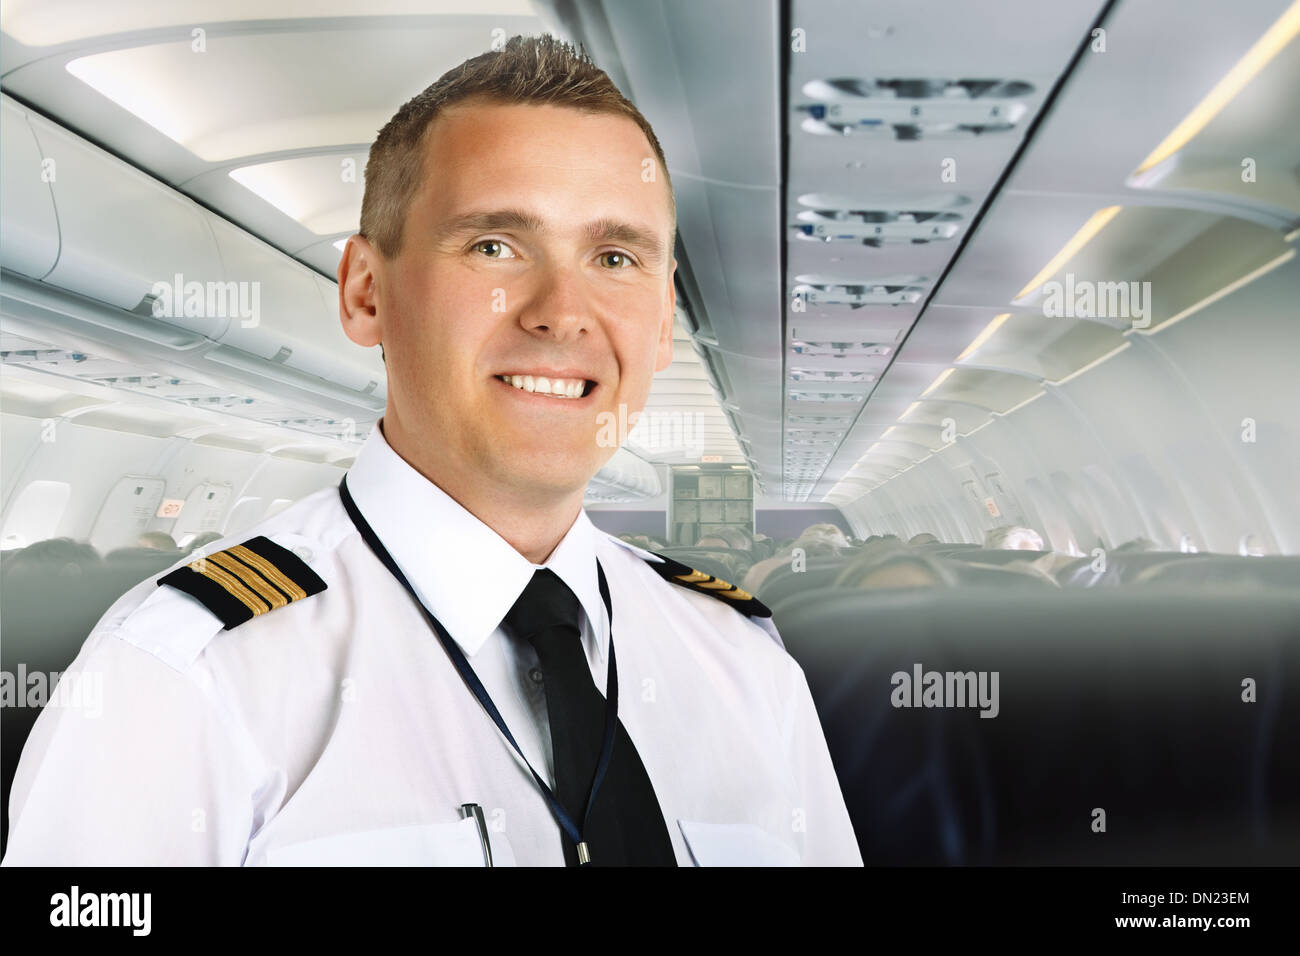 Airline pilot wearing uniform with epaulettes on board of passenger aircraft. - Stock Image